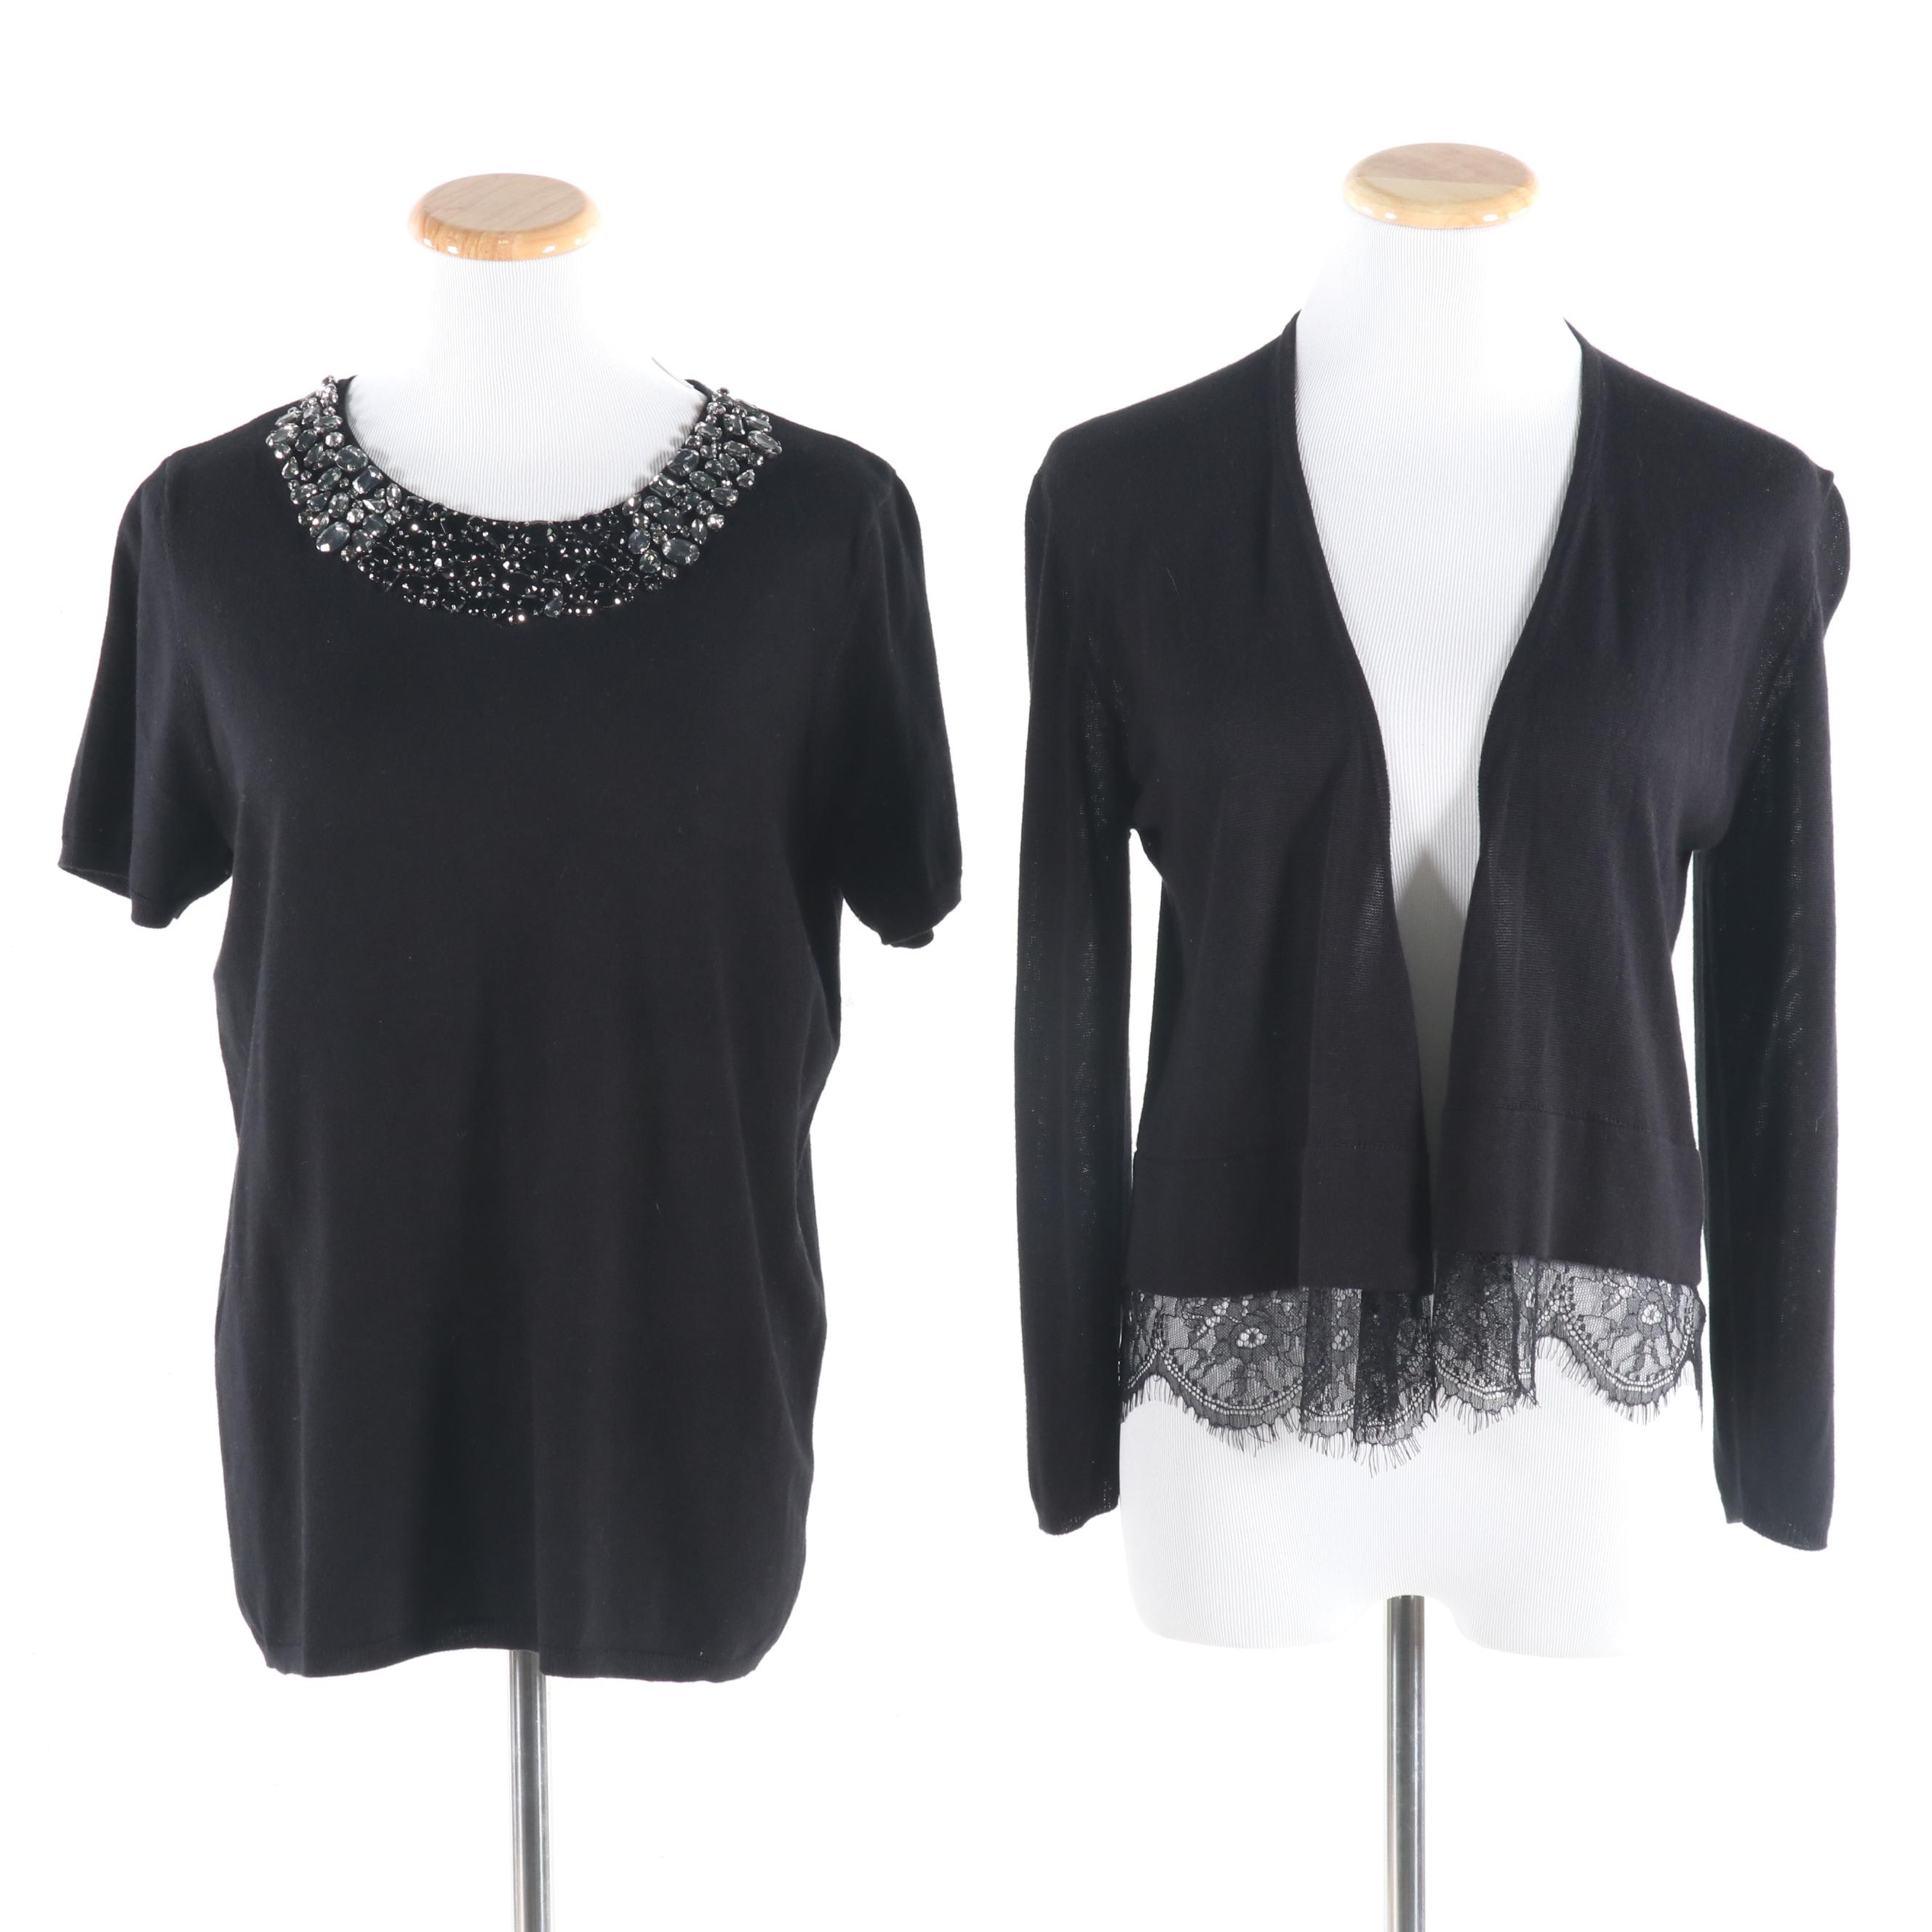 CARMEN Carmen Marc Valvo Embellished Black Rayon Knit Top and Cardigan with Lace